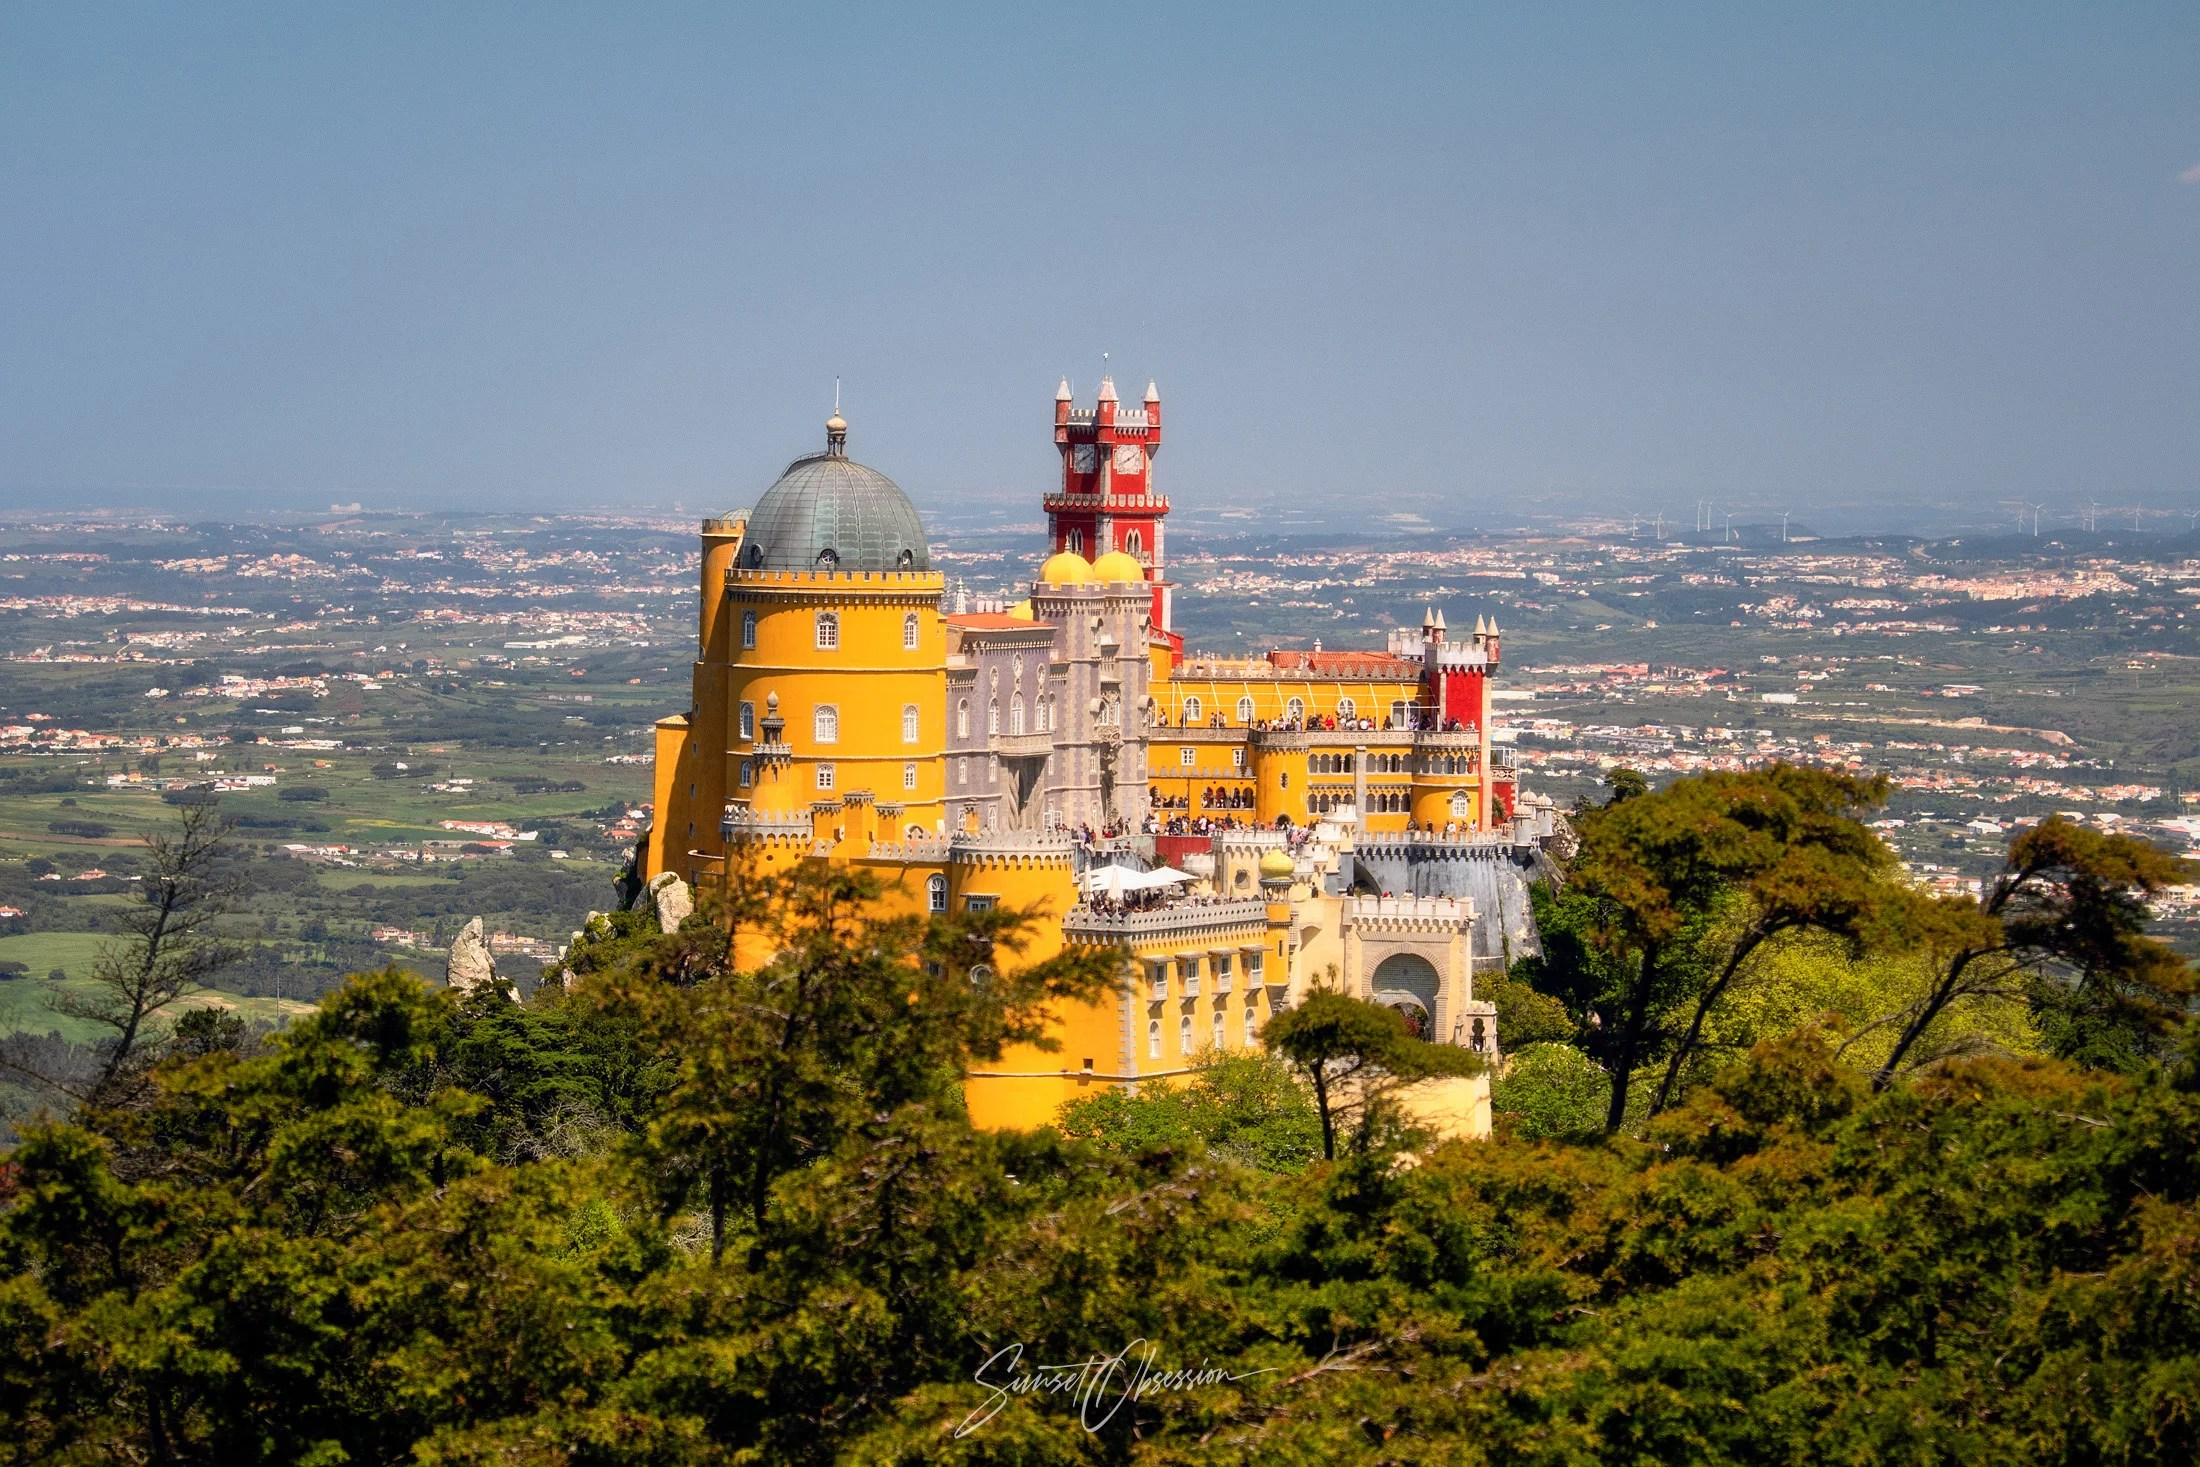 The Pena palace as seen from Cruz Alta viewpoint, Sintra